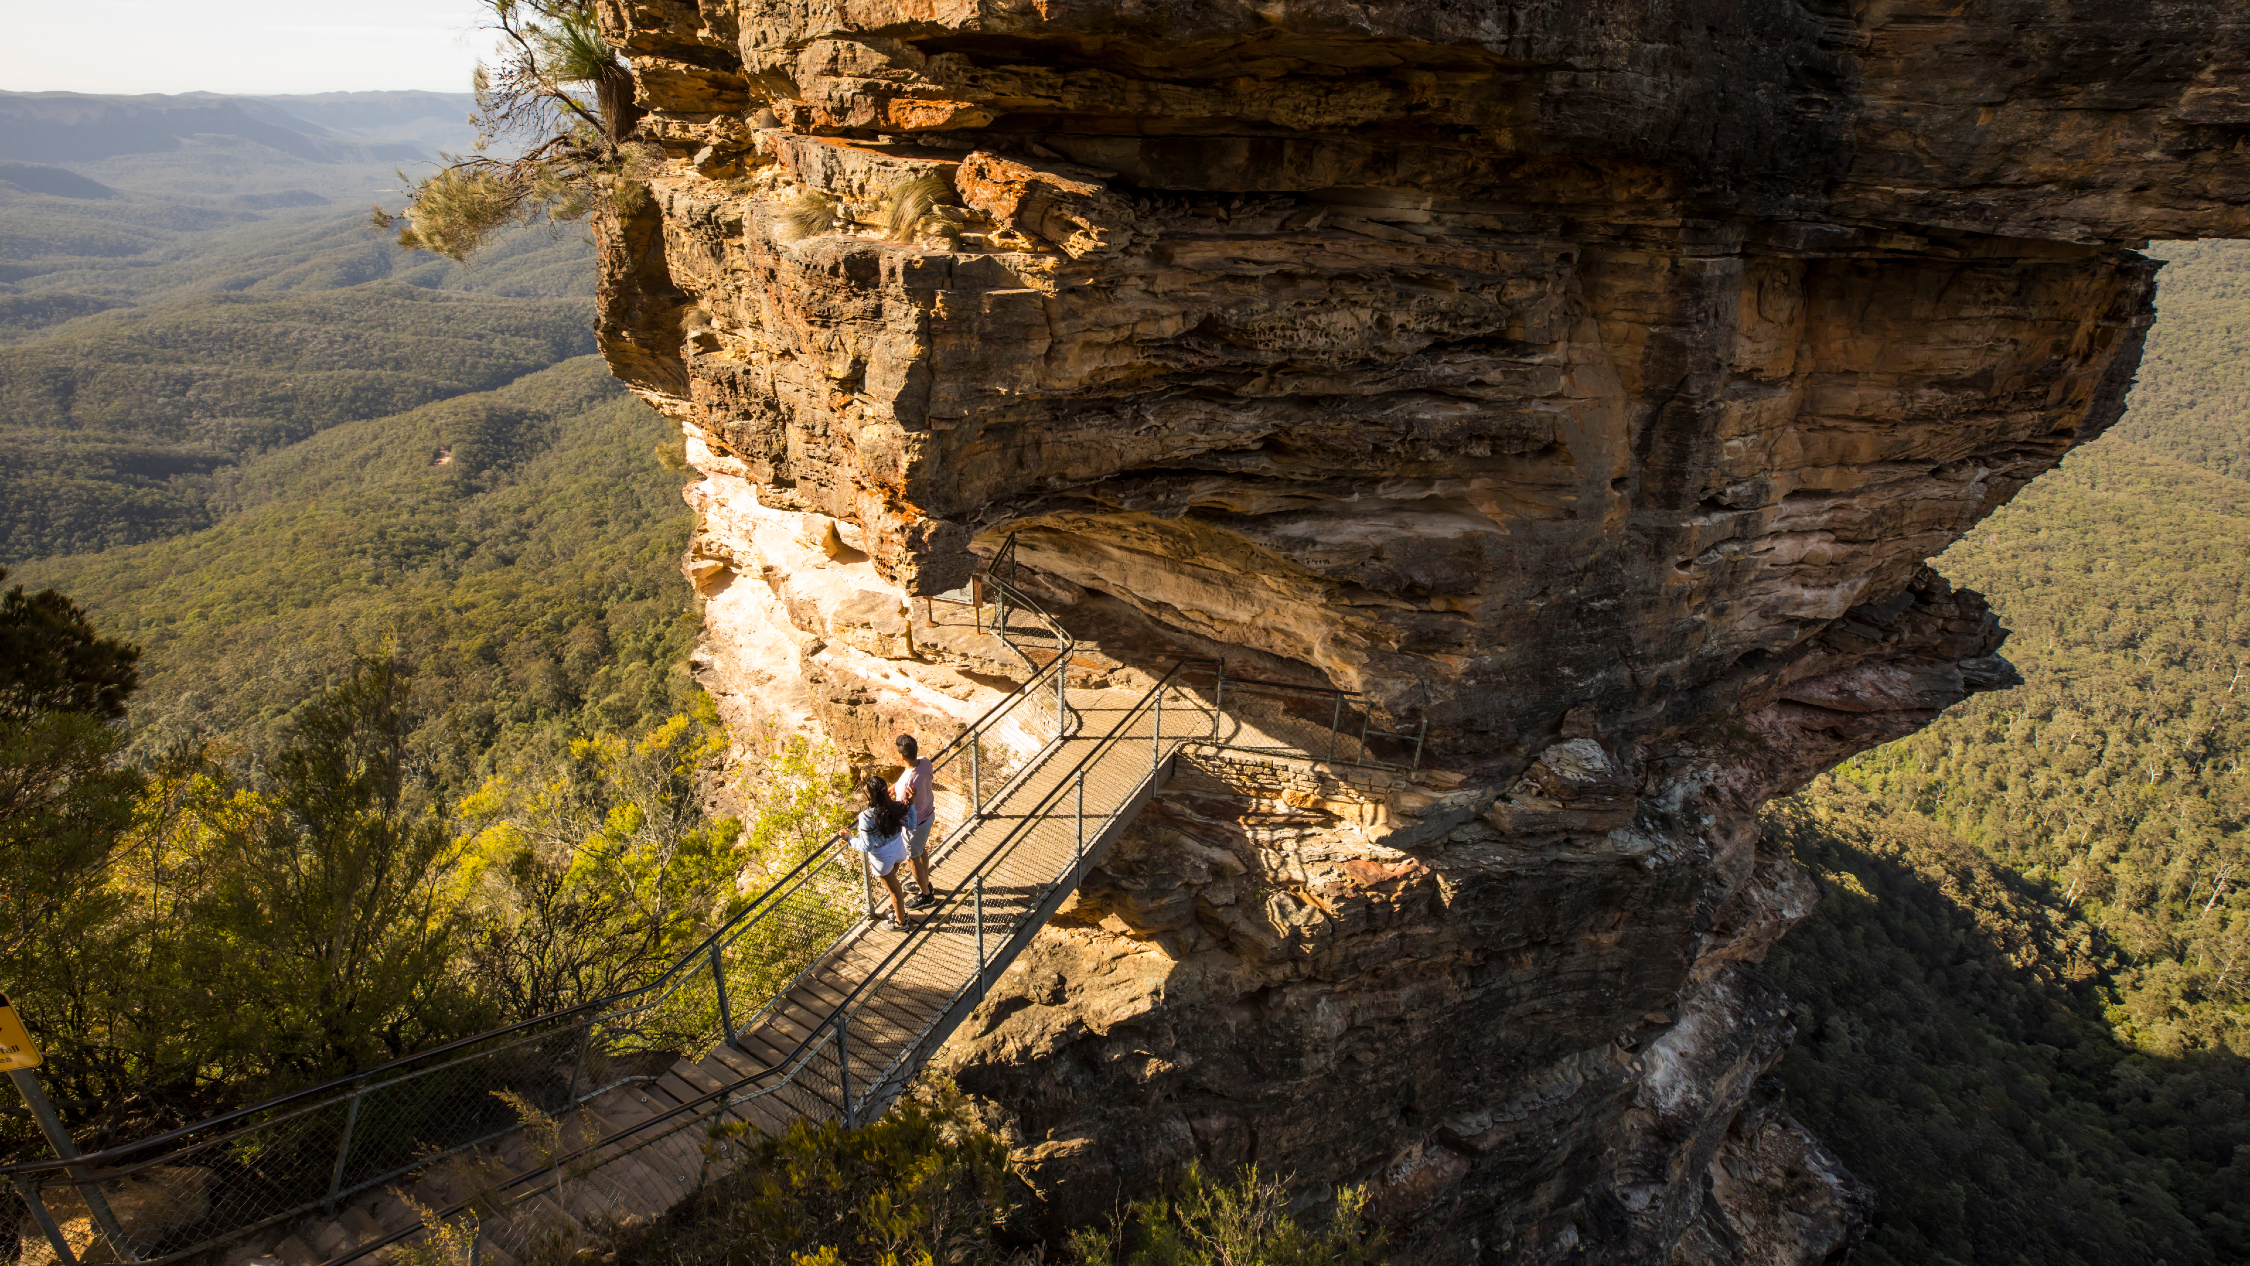 Two people stand on Honeymoon Bridge, looking out over the Jamison Valley next to the Three Sisters.